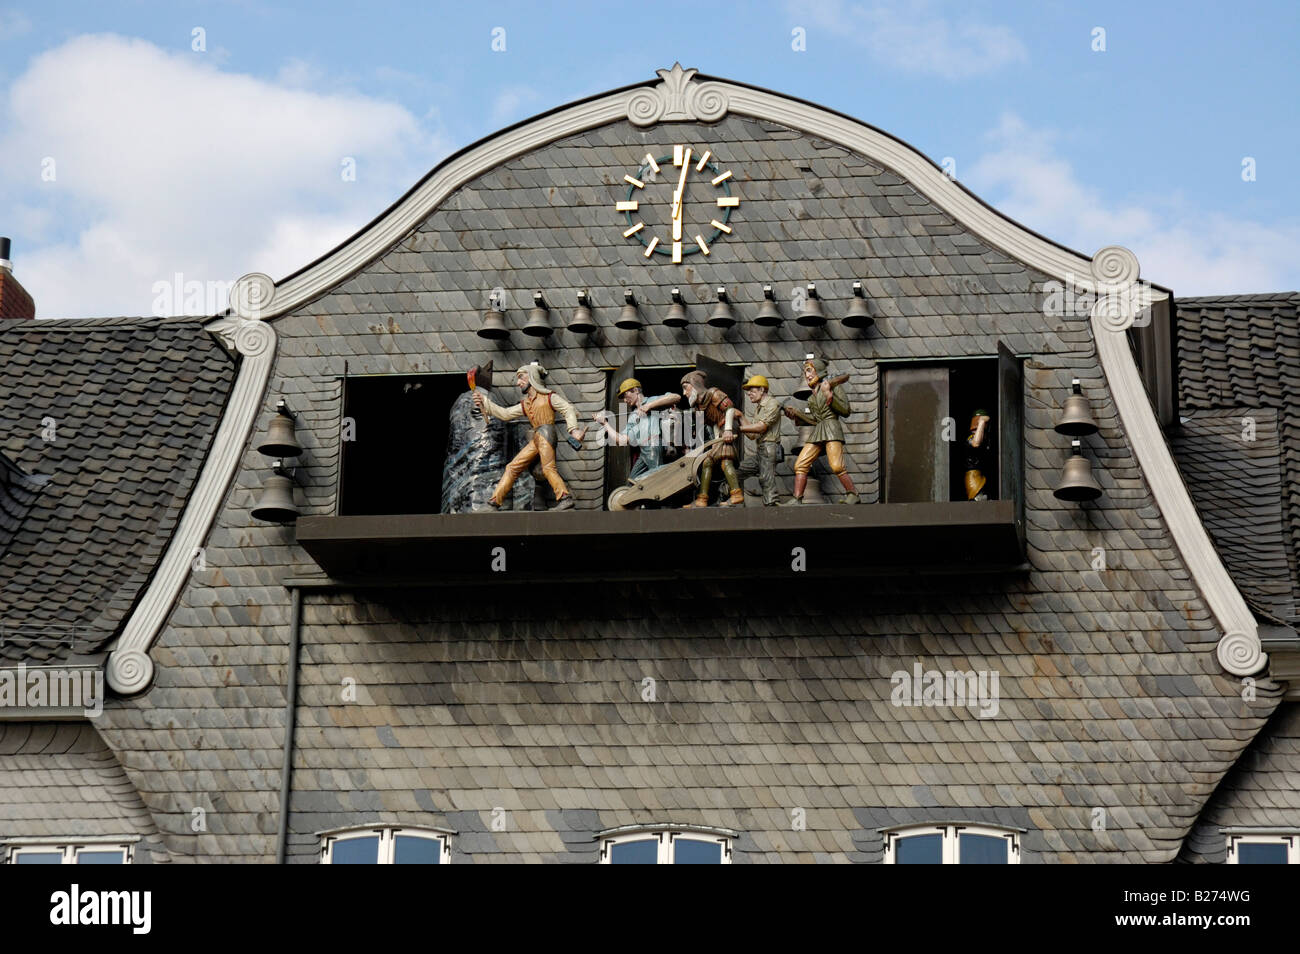 The clock on the Kaiserringhaus, Market Square in Goslar, Lower Saxony, Germany. Stock Photo